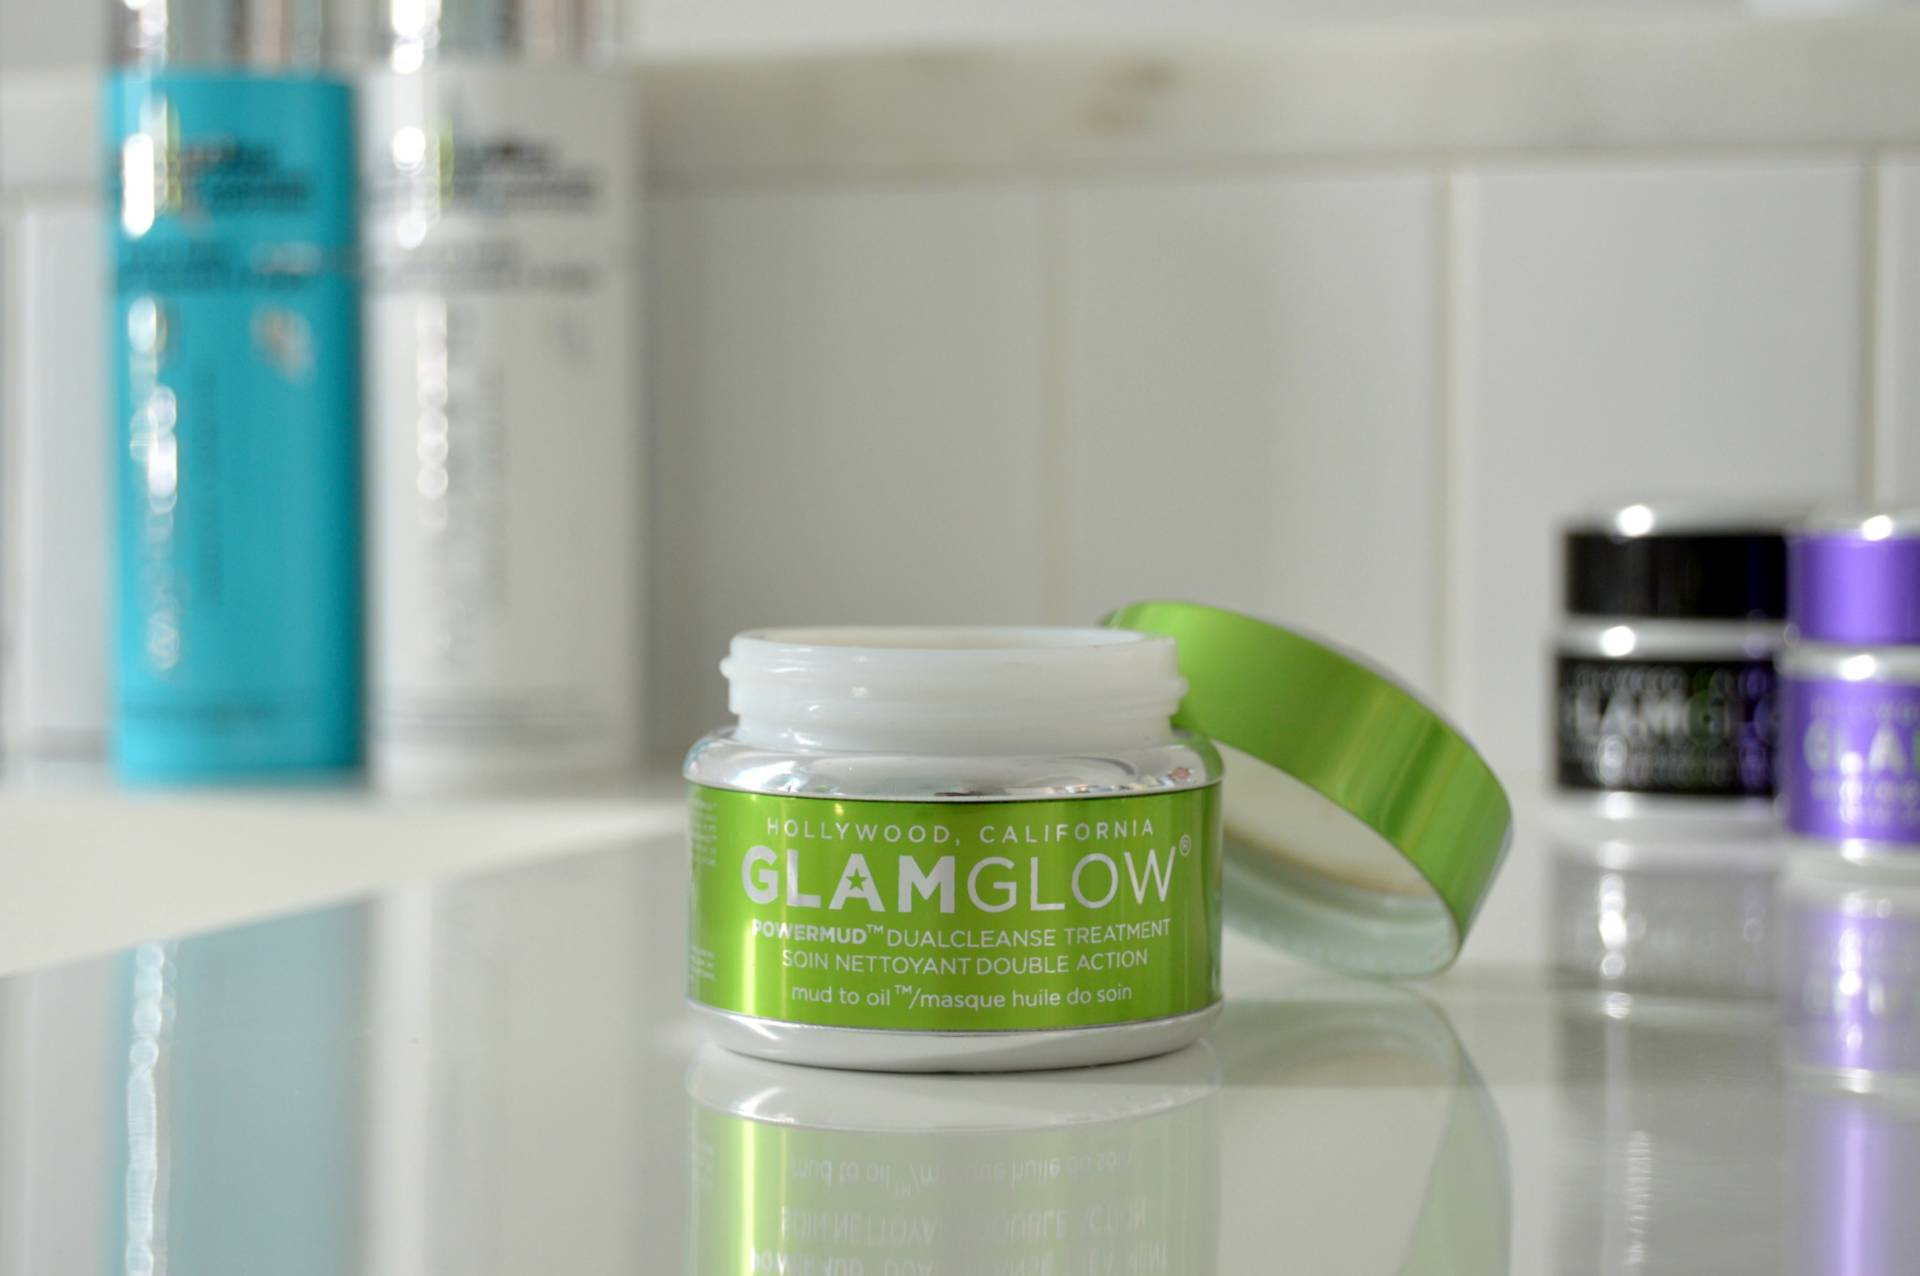 GlamGlow Mud Treatment Powermud DualCleanse Treatment 50g的圖片搜尋結果